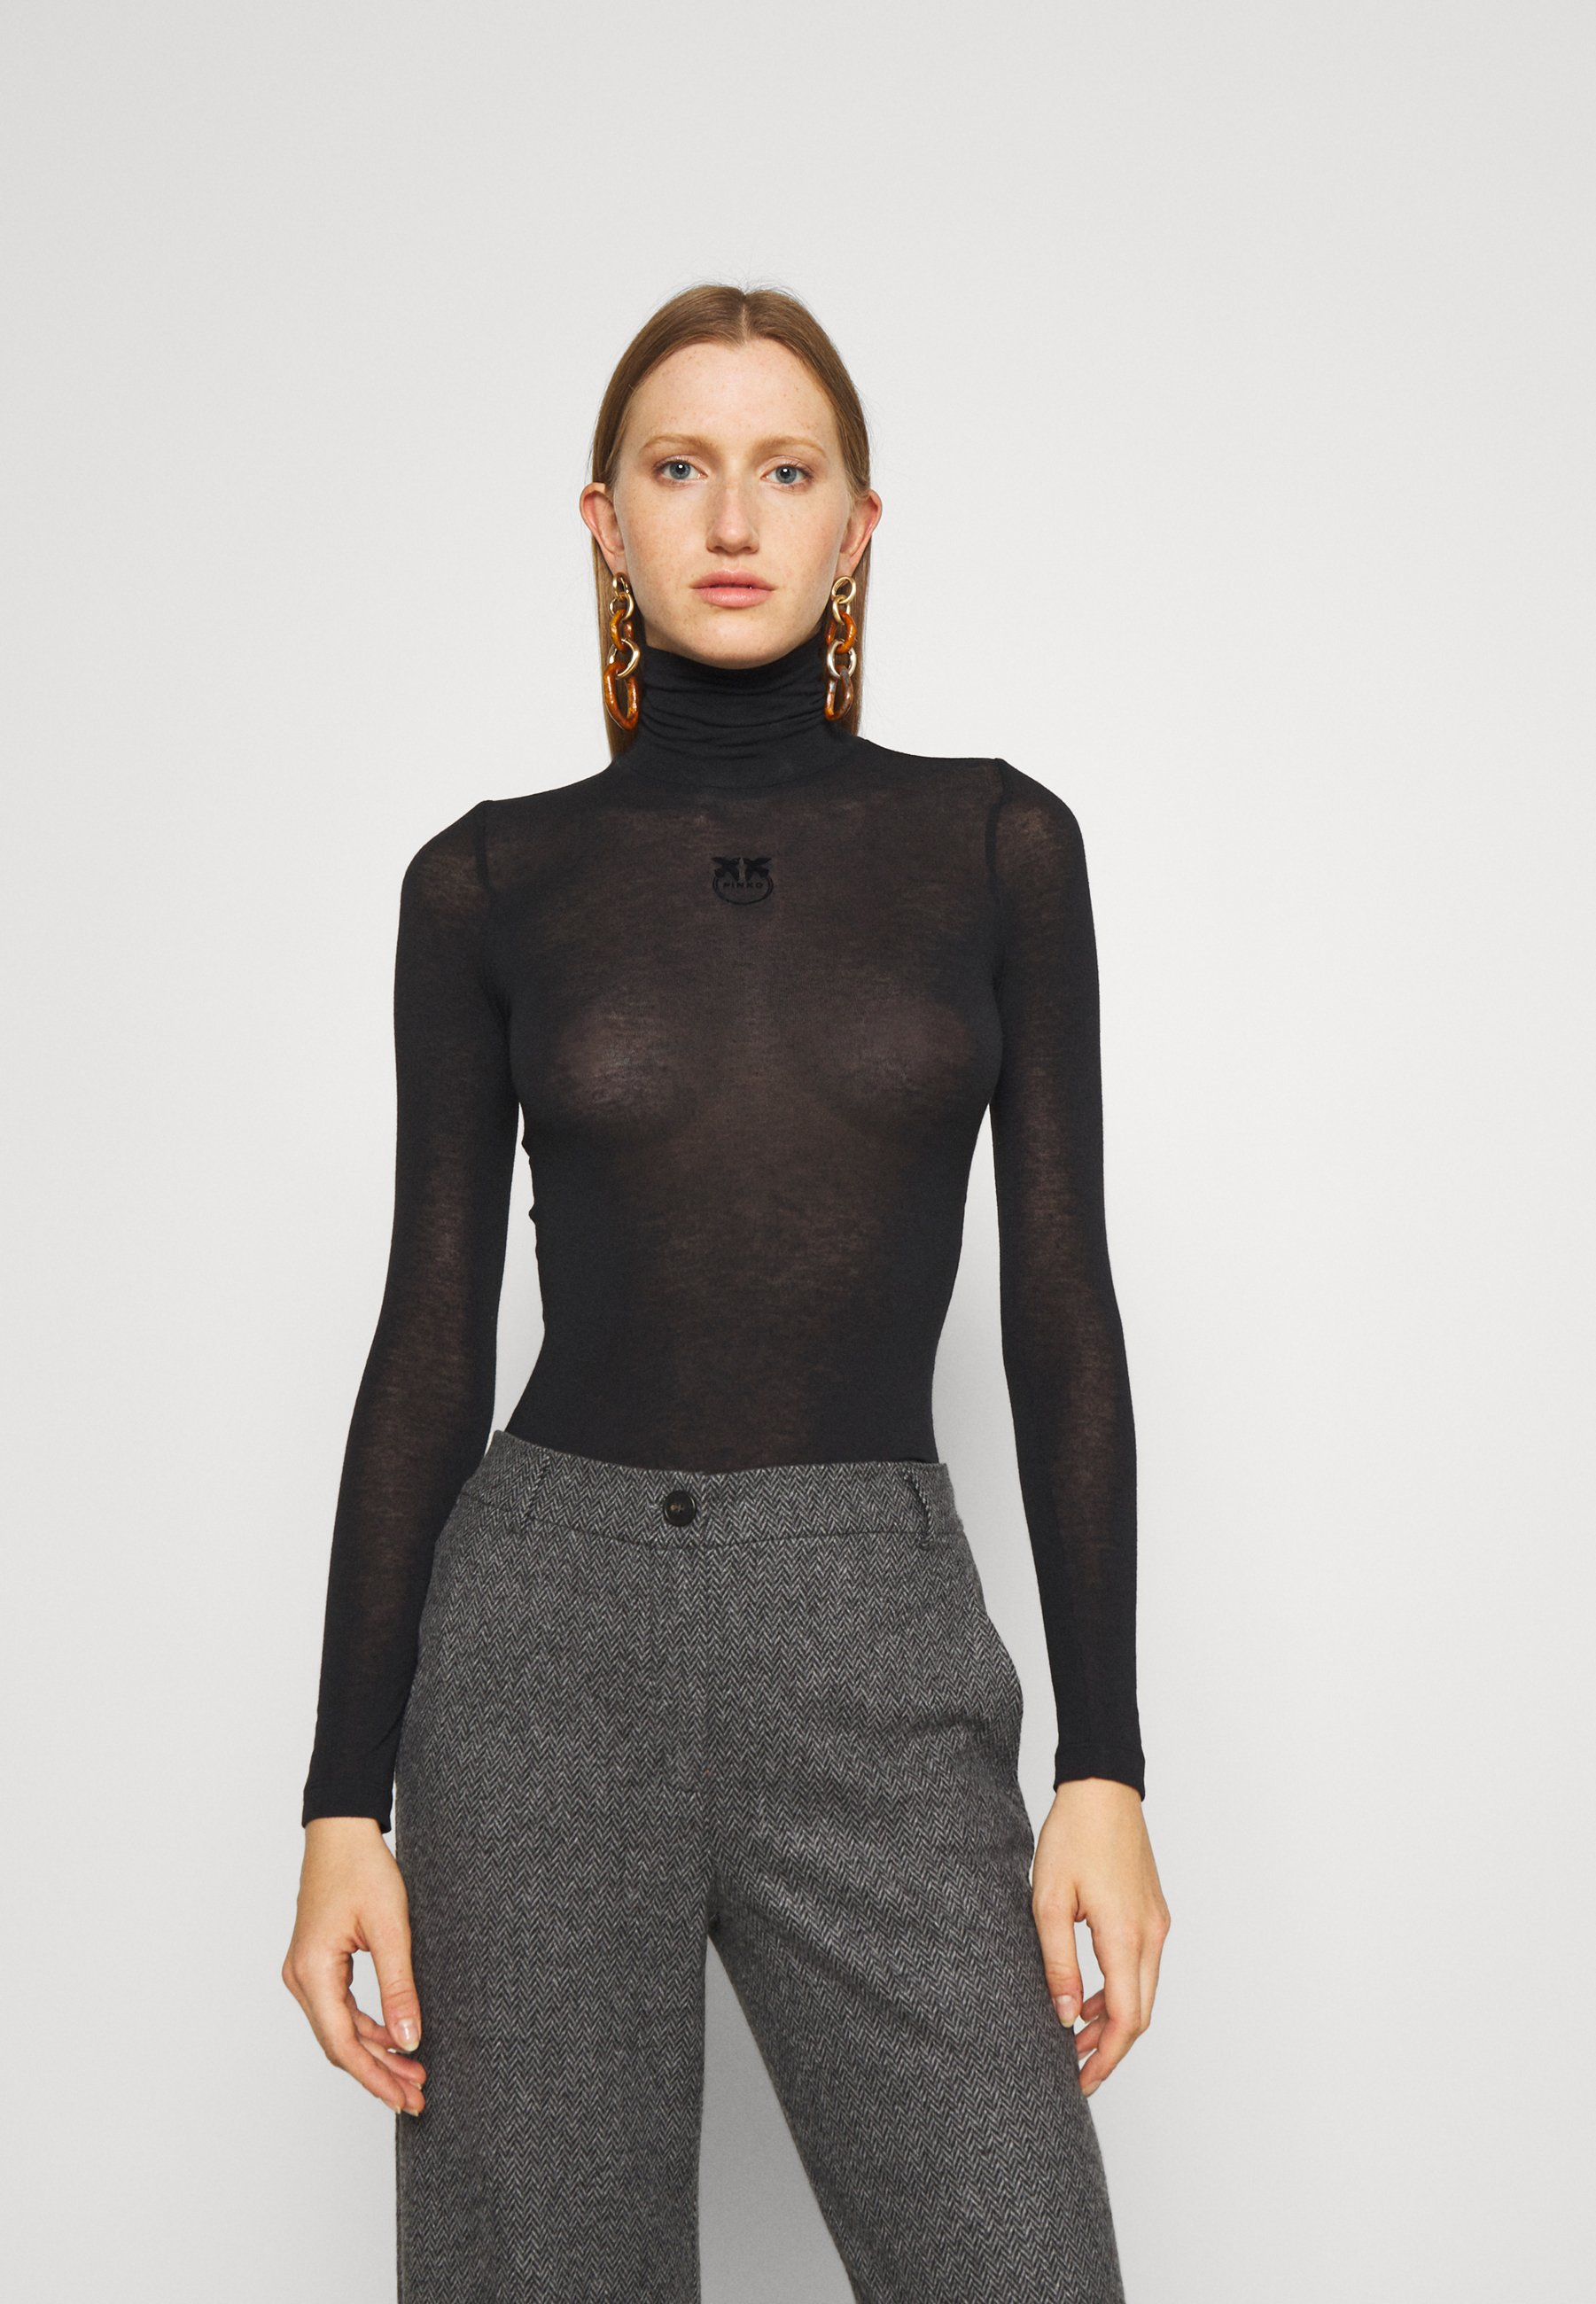 Women ABDALY DOLCEVITA - Long sleeved top